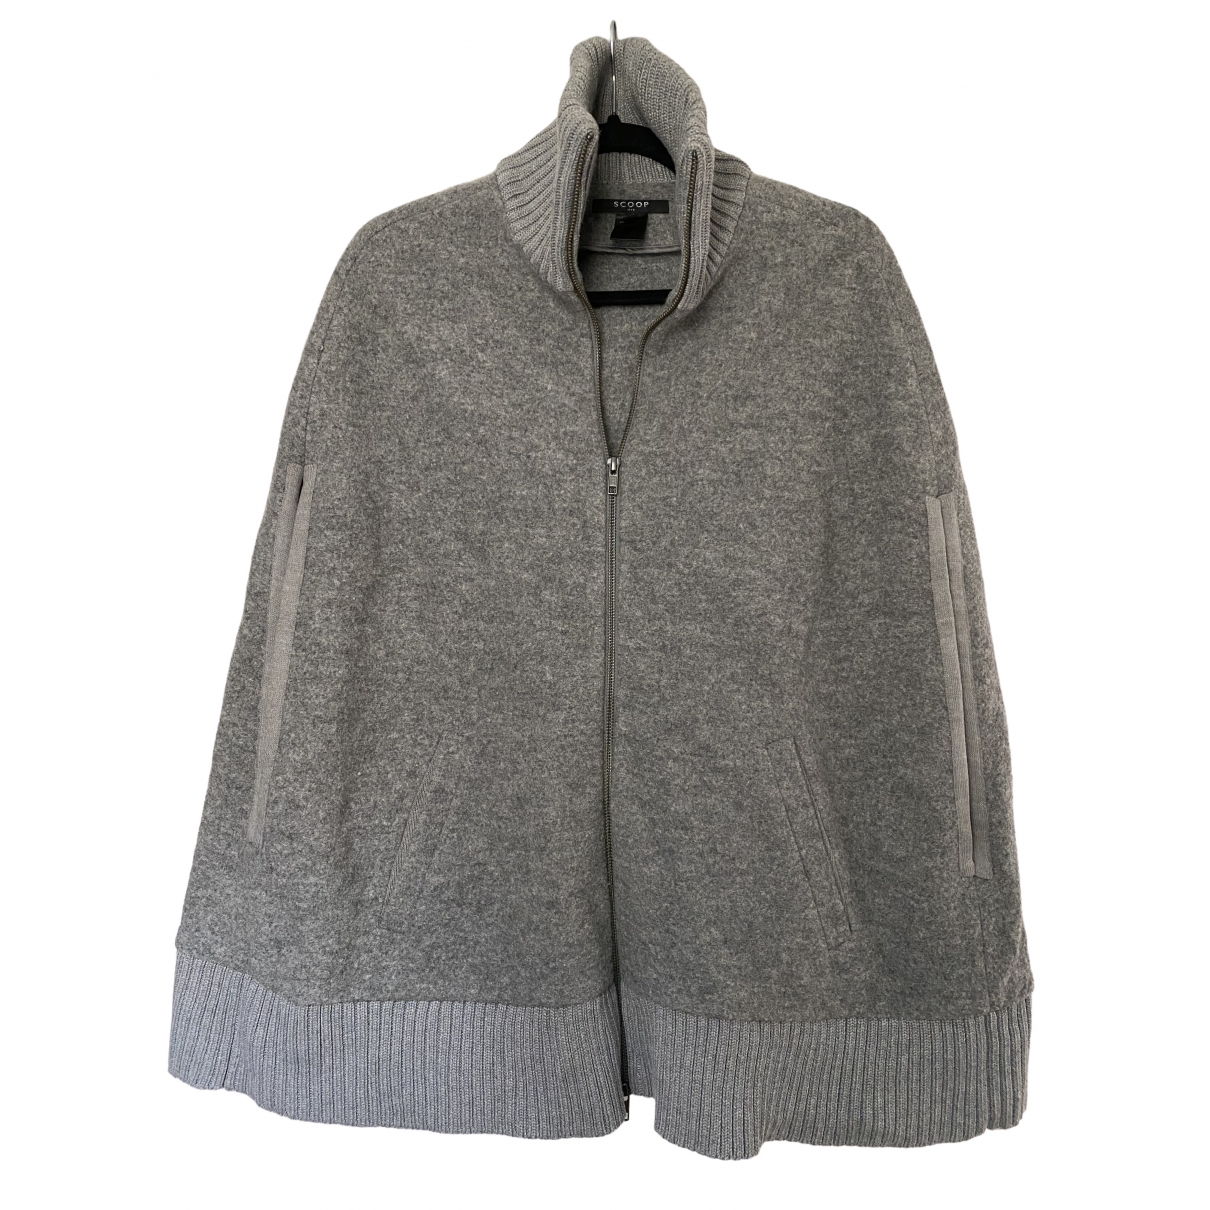 Scoop \N Grey Wool jacket for Women S International